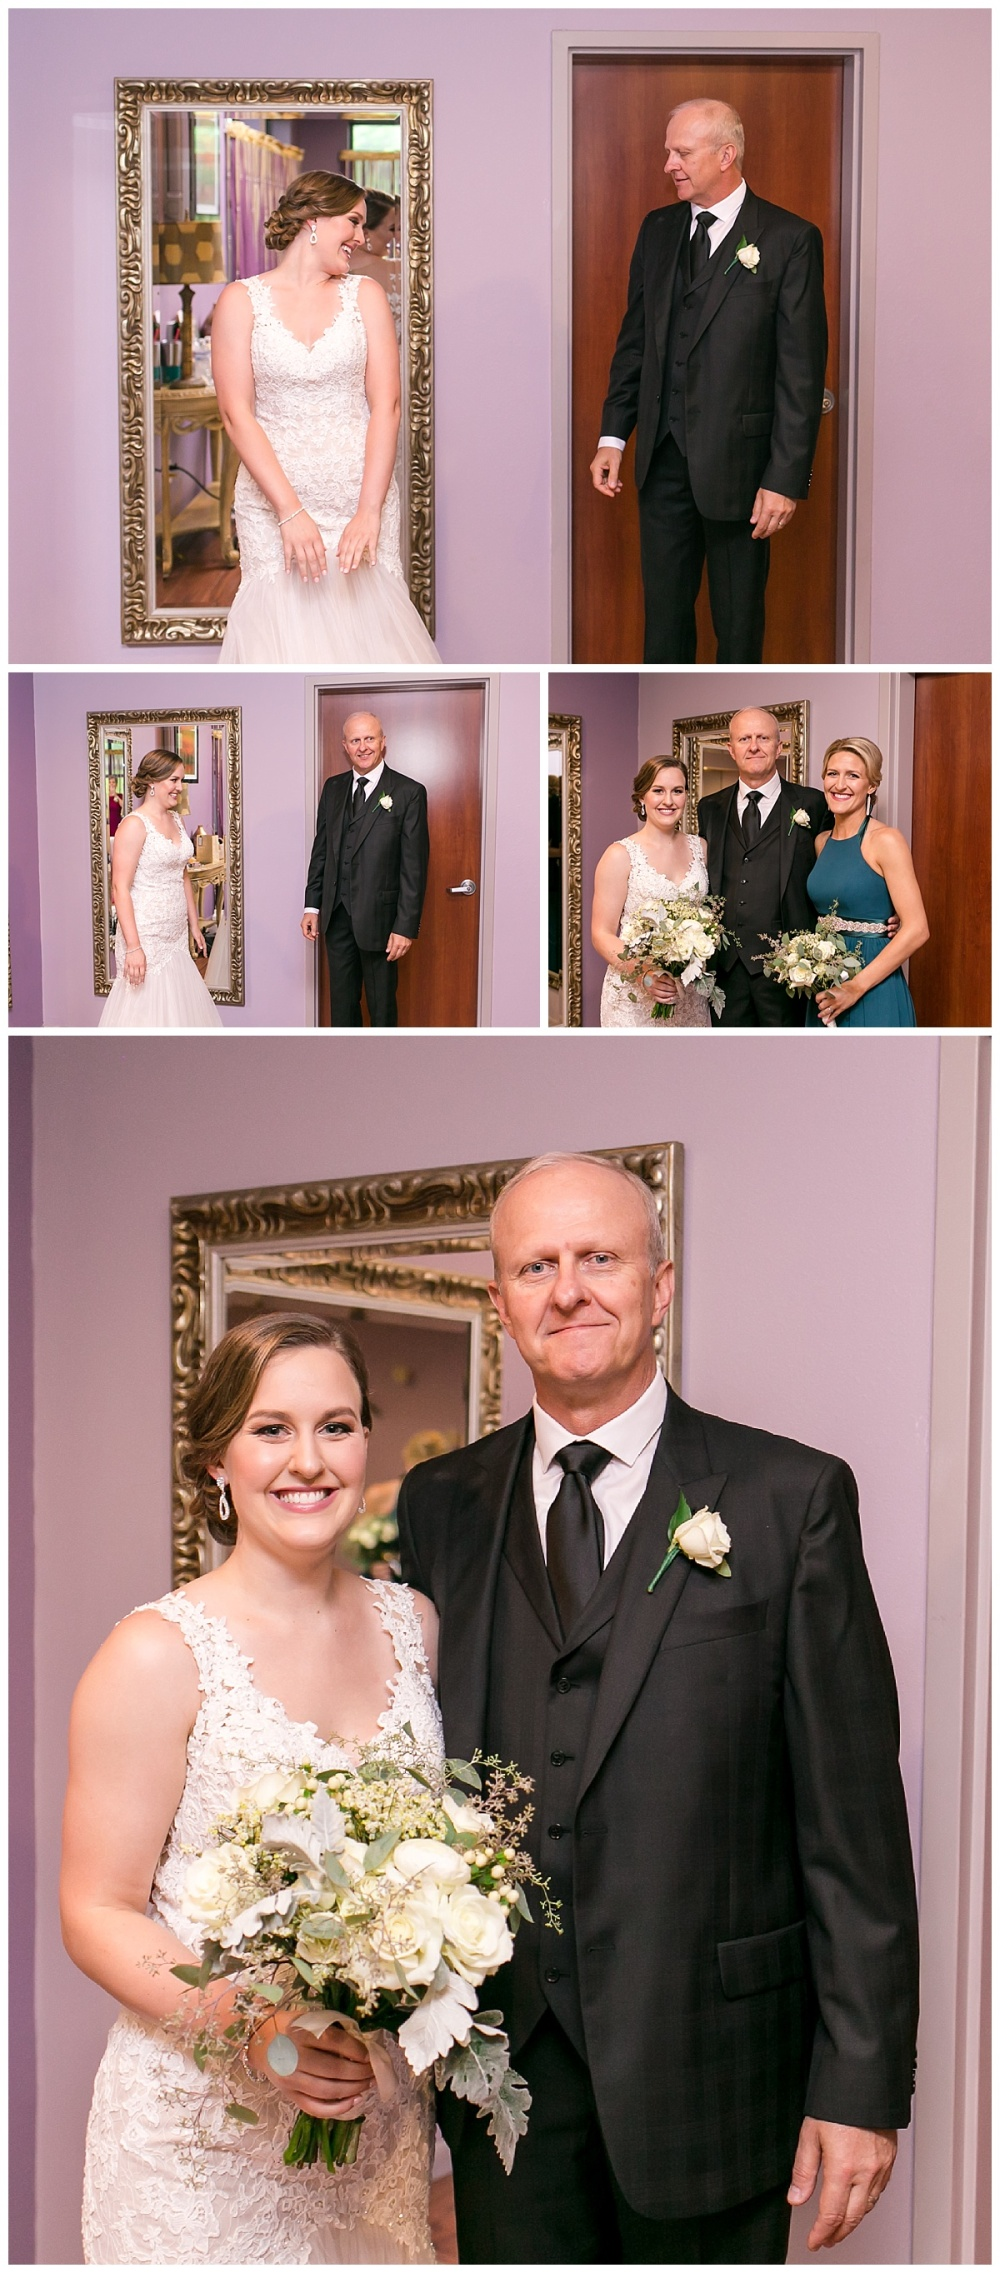 Carly-Barton-Photography-Wedding-Photos-Granberry-Hills-Event-Facility-Ryan-Chelsea-San-Antonio-Texas_0018